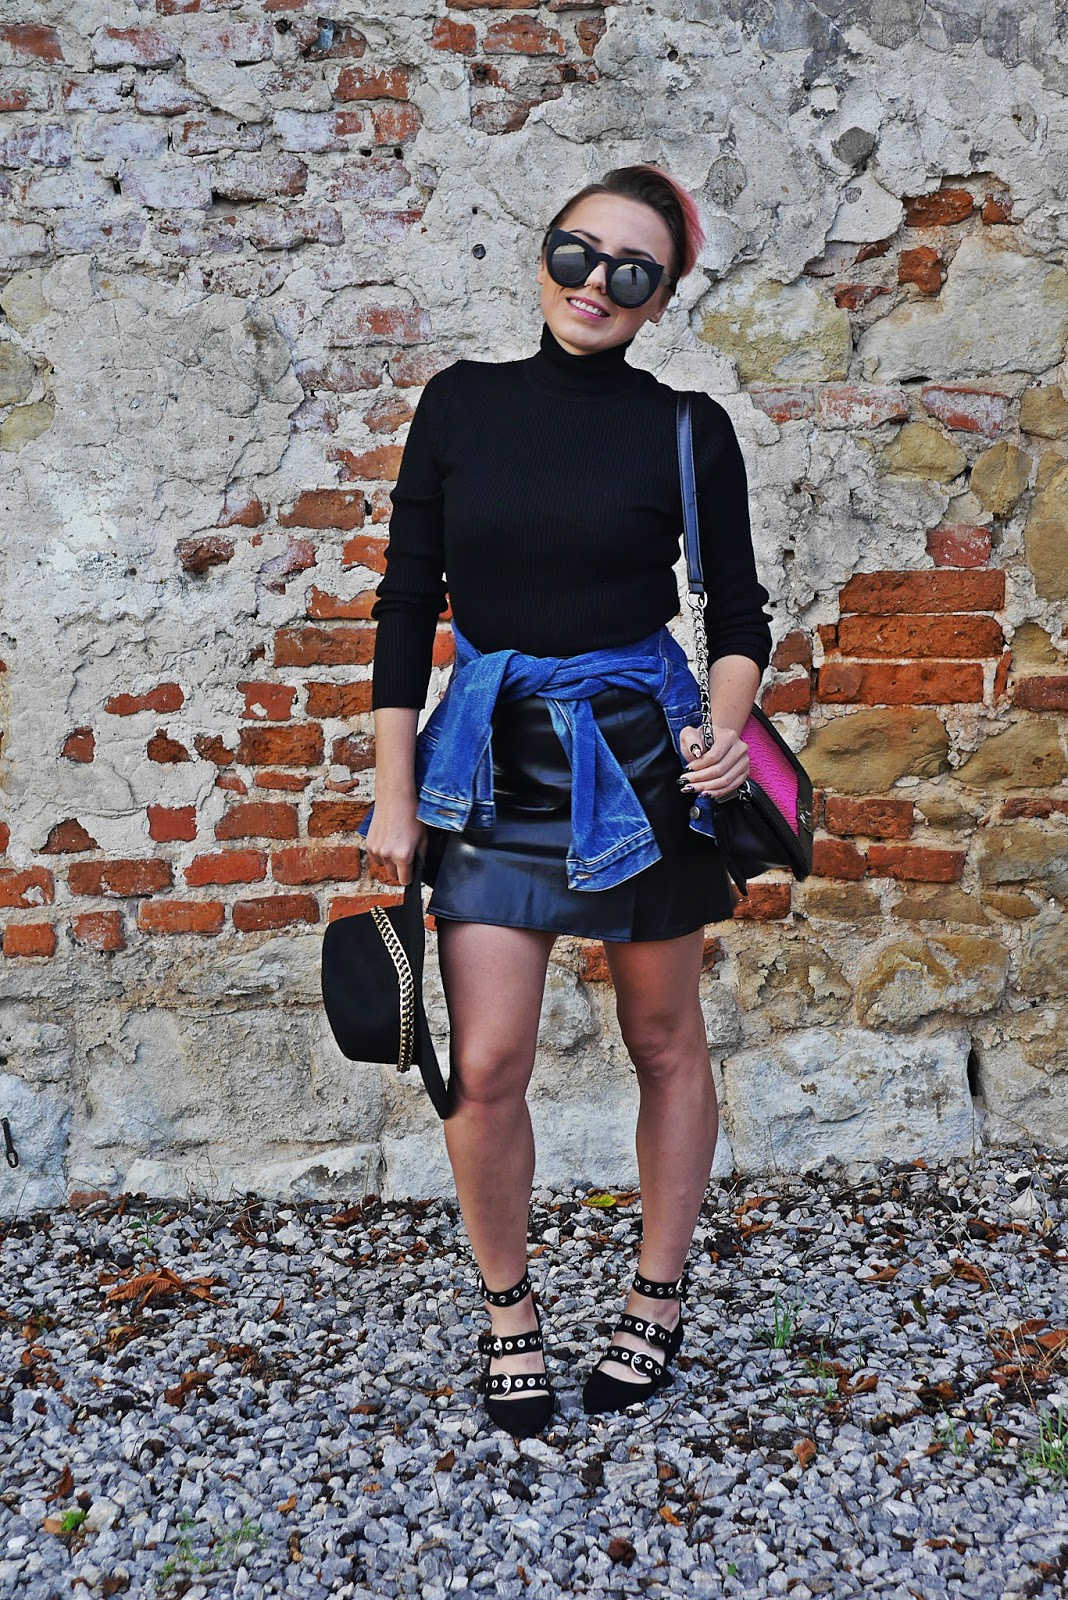 7_black_turtle_neck_leather_skirt_denim_jacket_karyn_blog_modowy_210817b